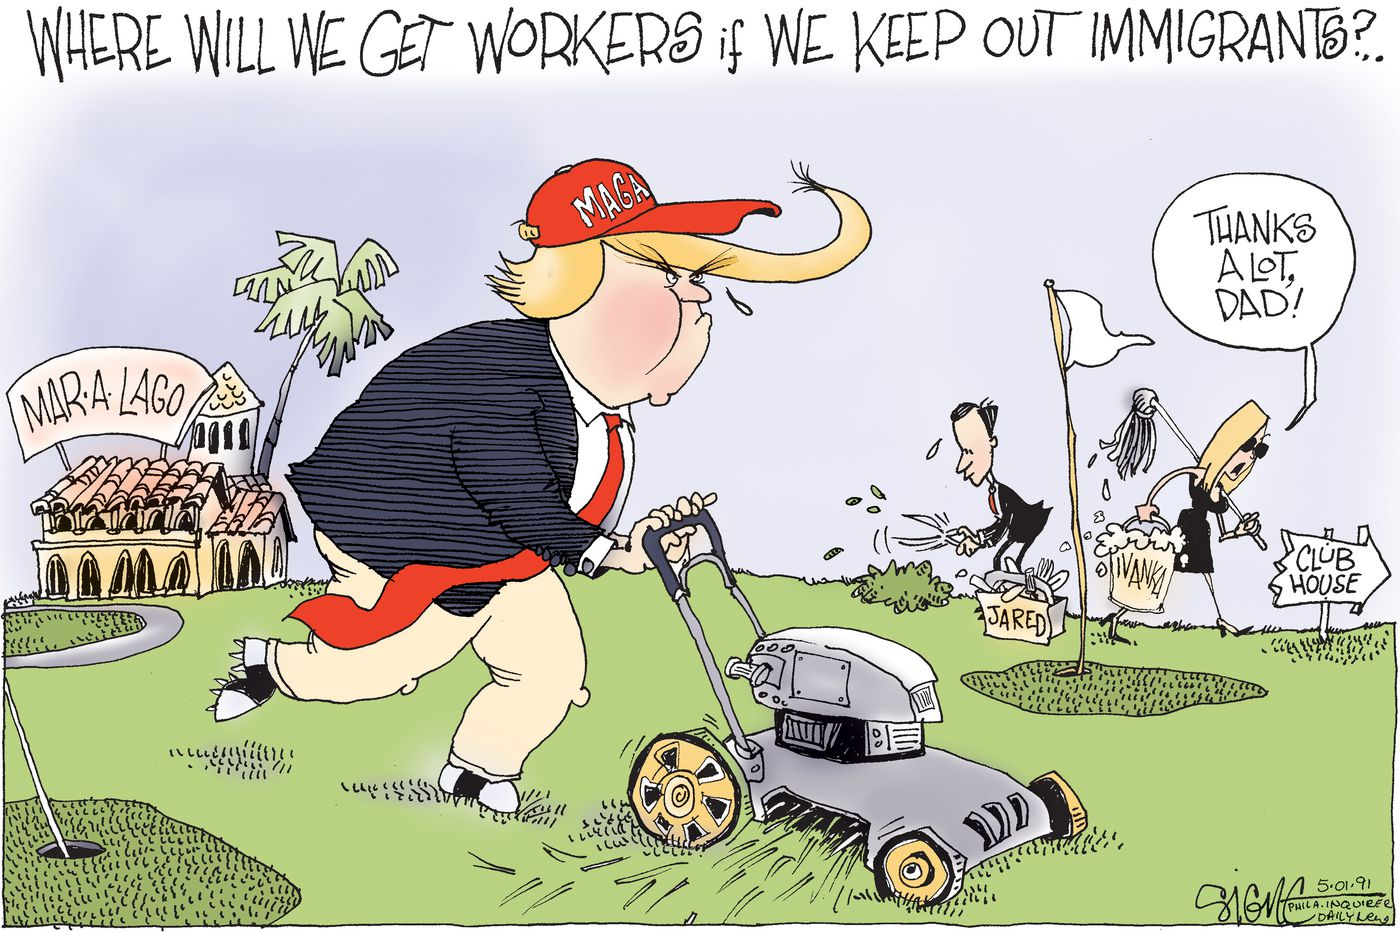 Political Cartoon: Mar-A-Lago immigrant workers